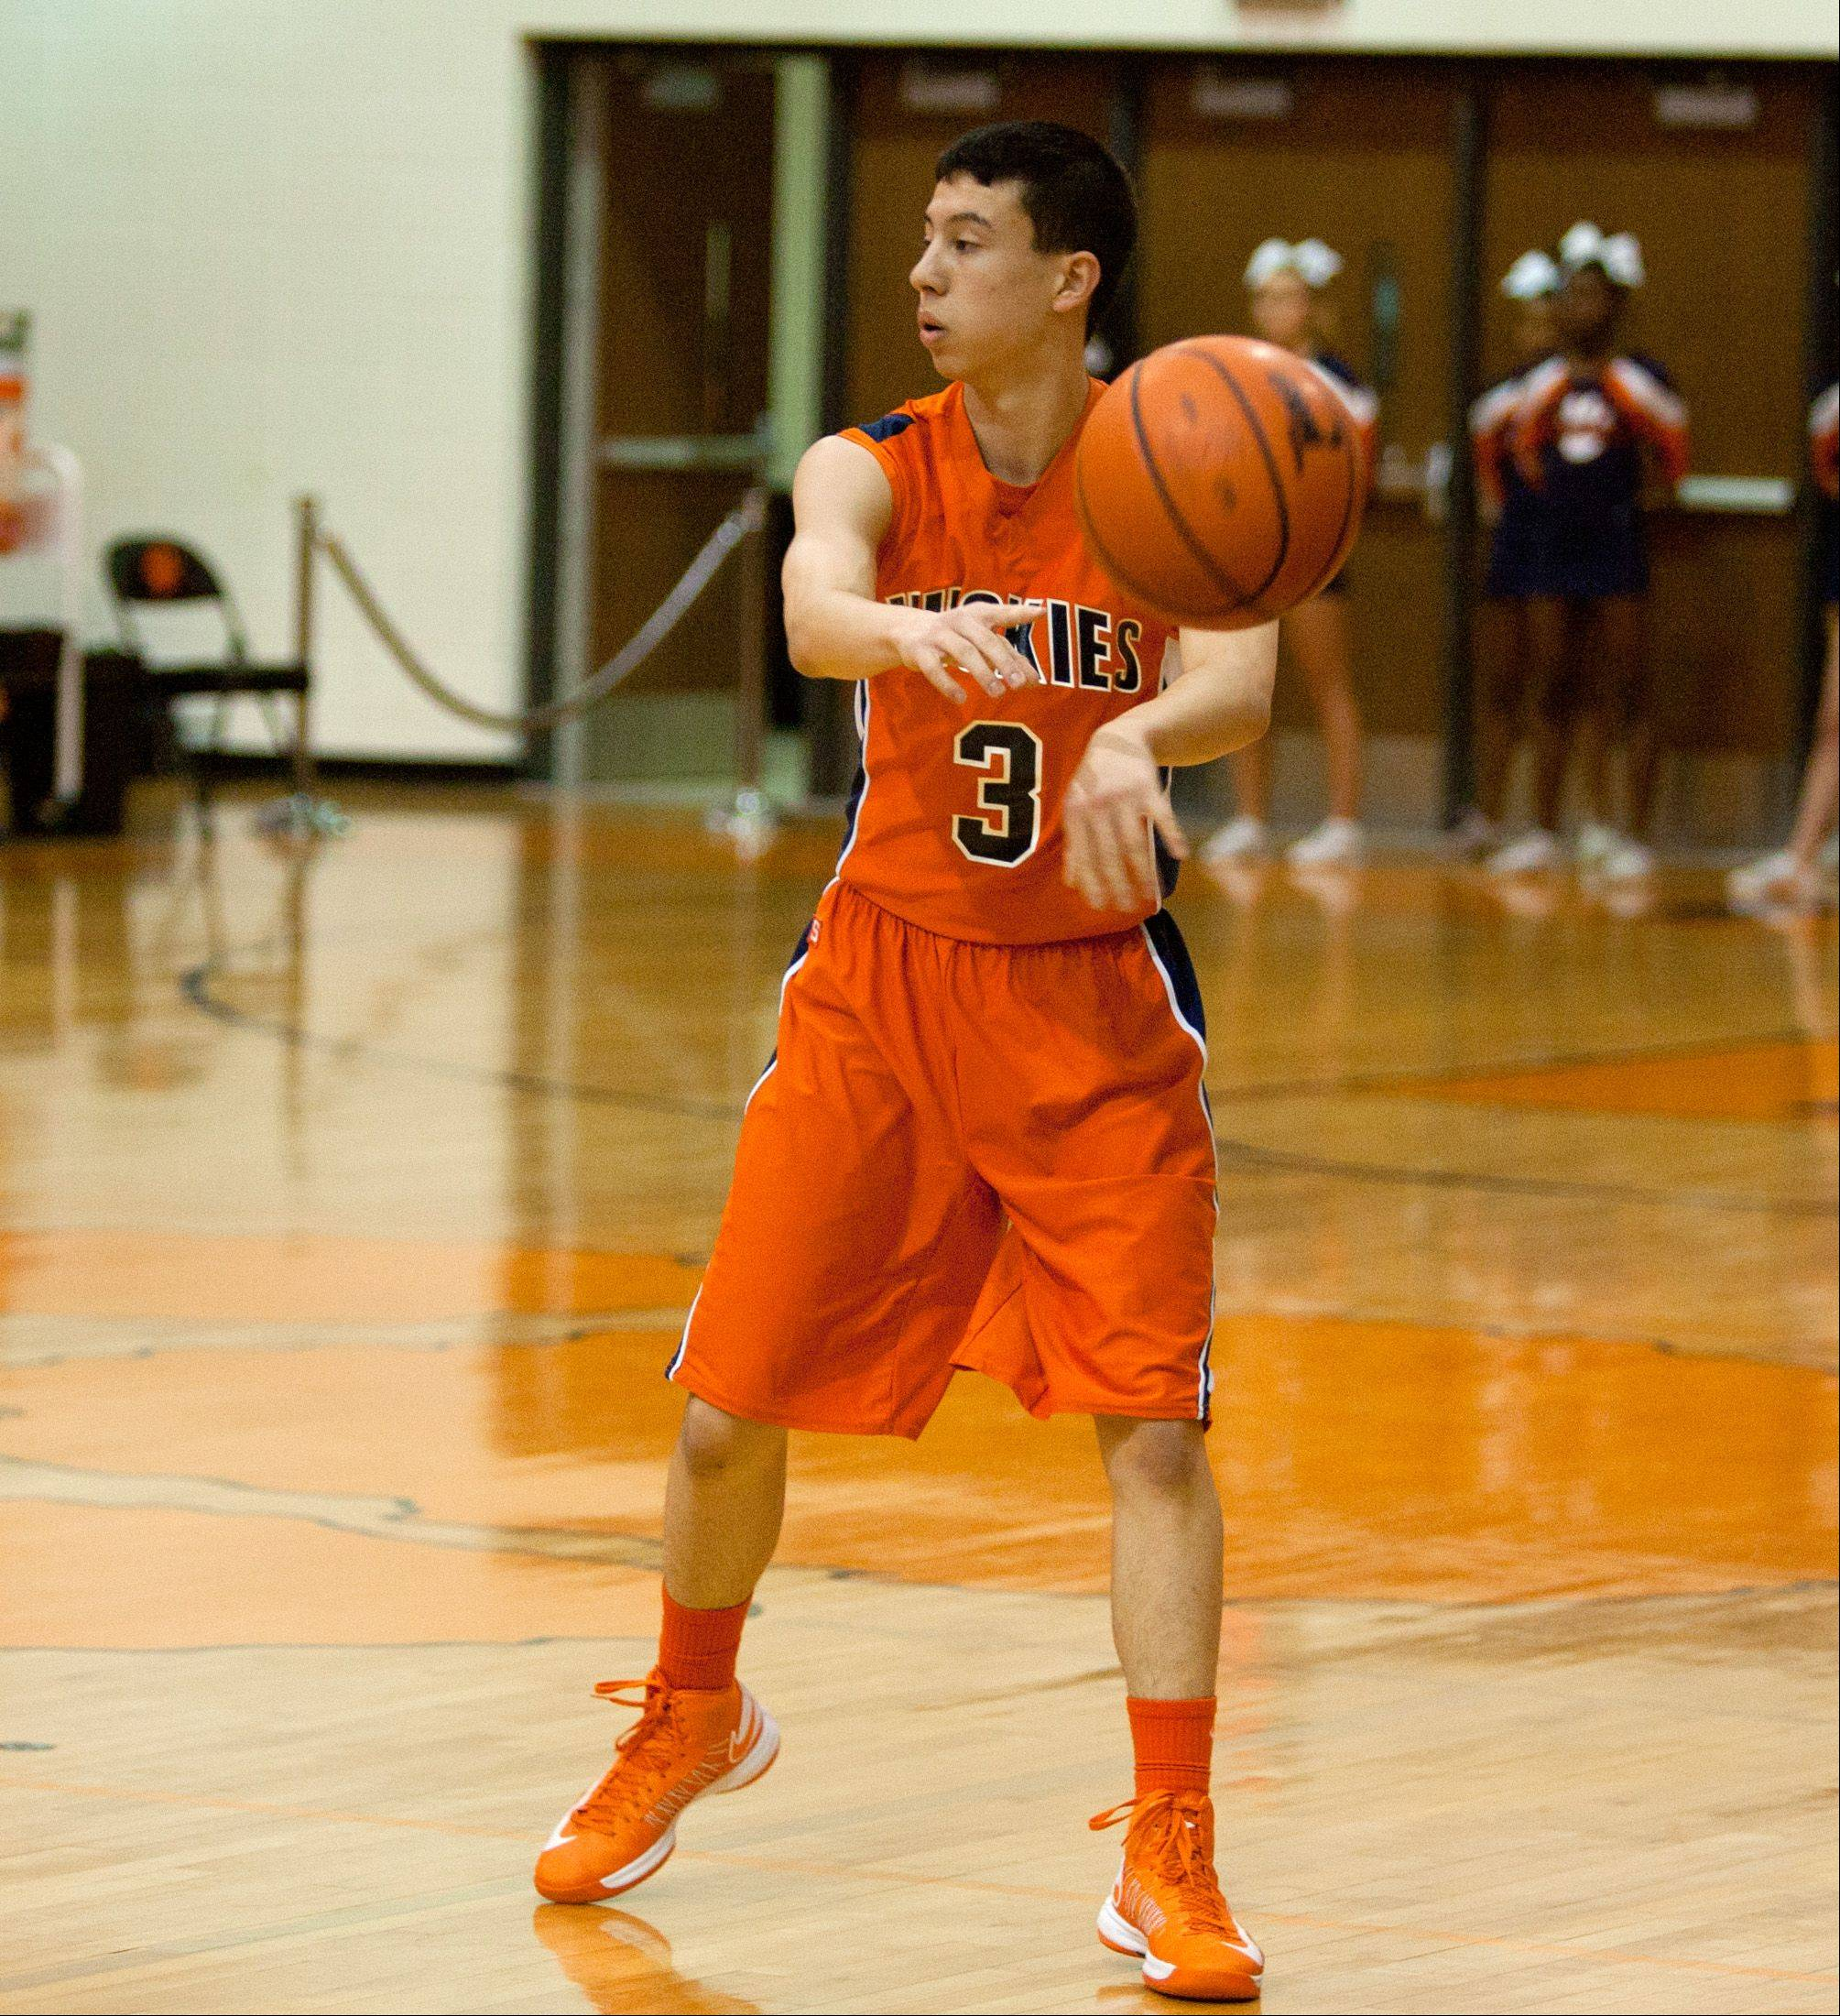 Wheaton Warrenville South hosted Naperville North Friday night for boys basketball.